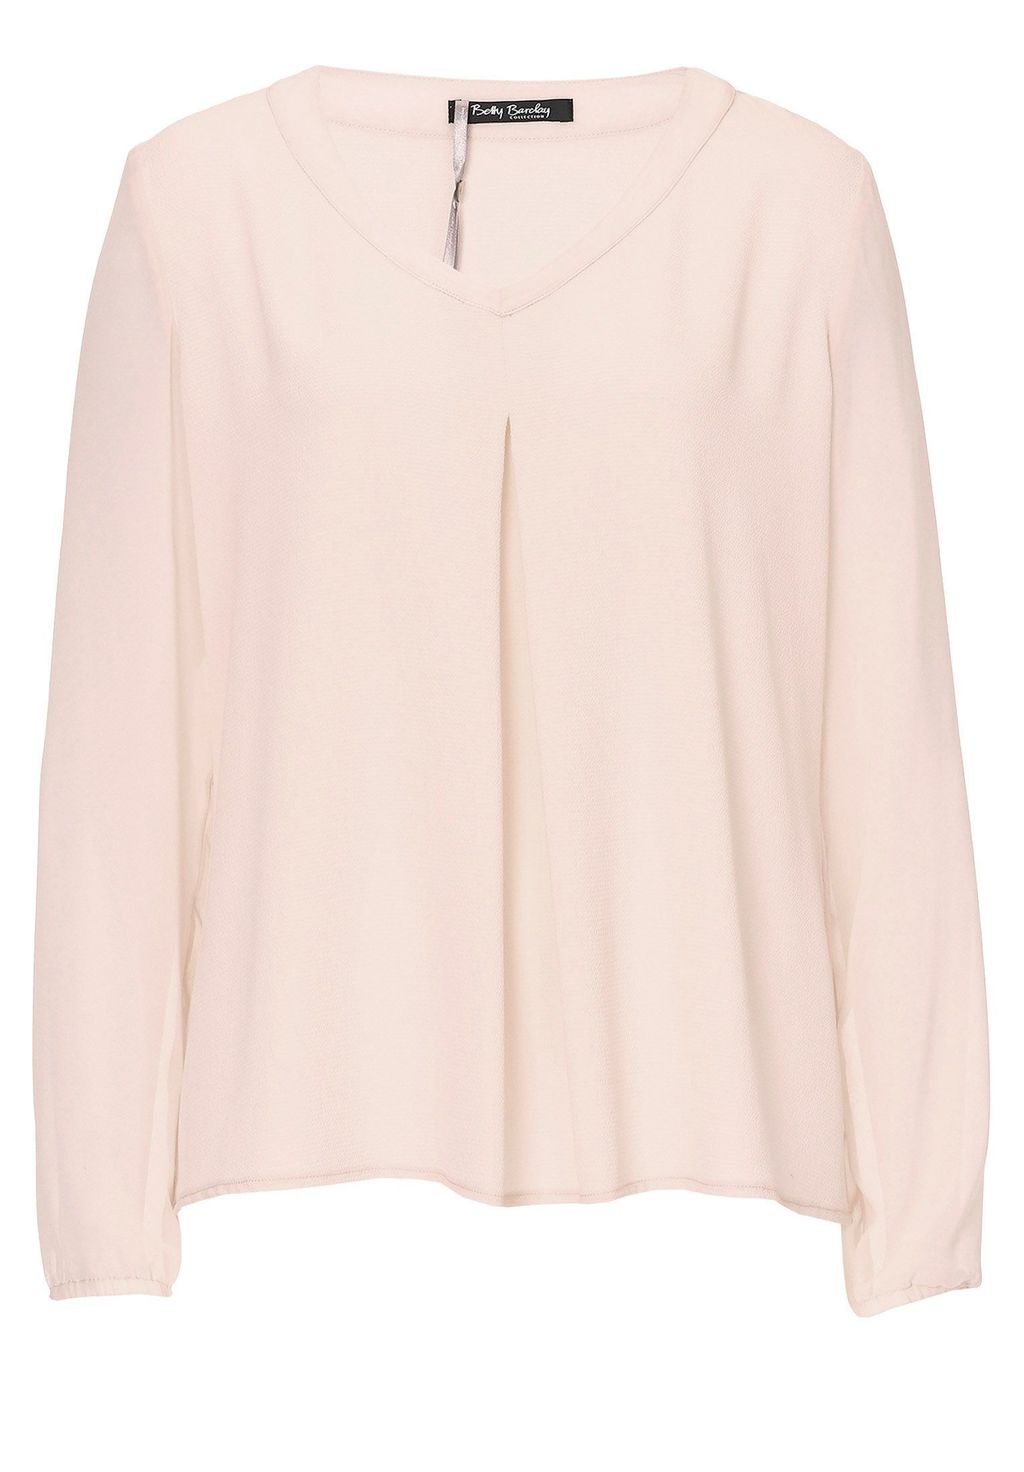 Crepe And Chiffon Top, Pink - neckline: v-neck; pattern: plain; style: blouse; predominant colour: blush; occasions: casual, creative work; length: standard; fibres: polyester/polyamide - stretch; fit: loose; sleeve length: long sleeve; sleeve style: standard; texture group: crepes; pattern type: fabric; season: a/w 2015